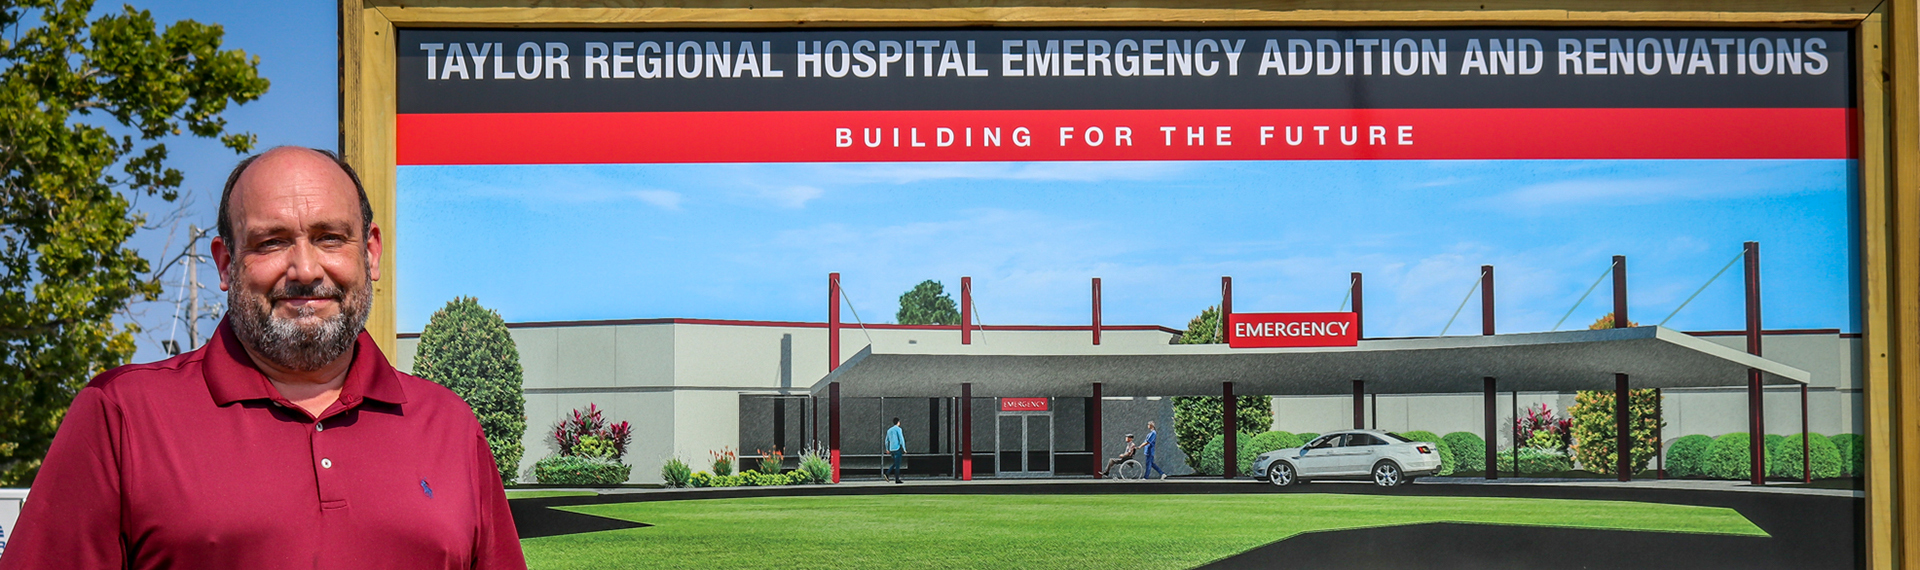 Man stands in front of mock emergency room photo